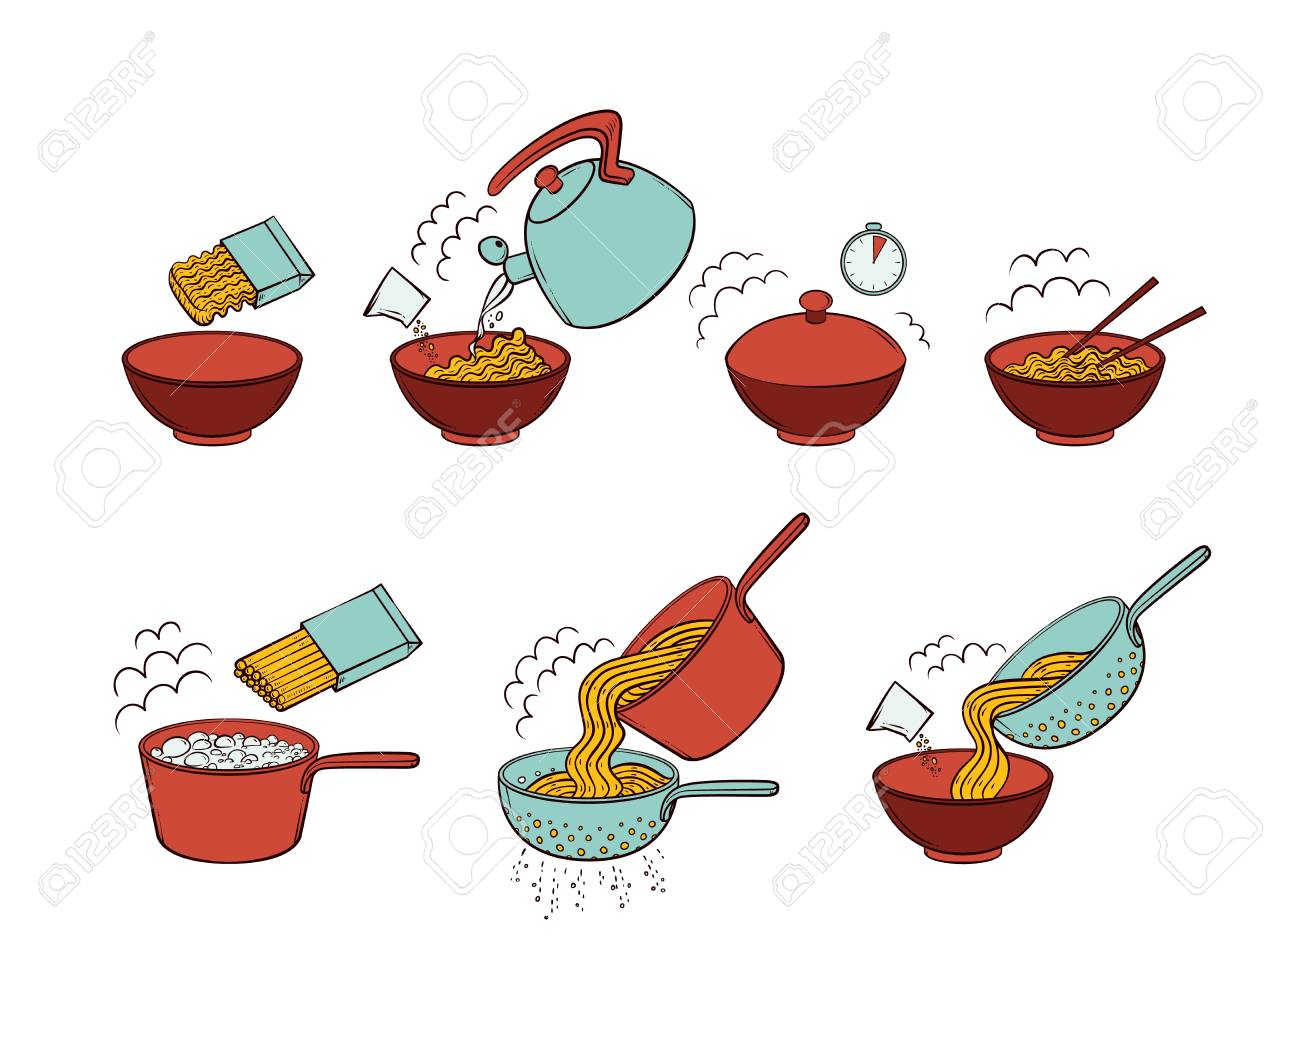 Step by step instant noodle and pasta cooking instructions, hand drawn, sketch style vector illustration isolated on white background. Cooking instant noodles and spaghetti, hand-drawn instructions - 98758787